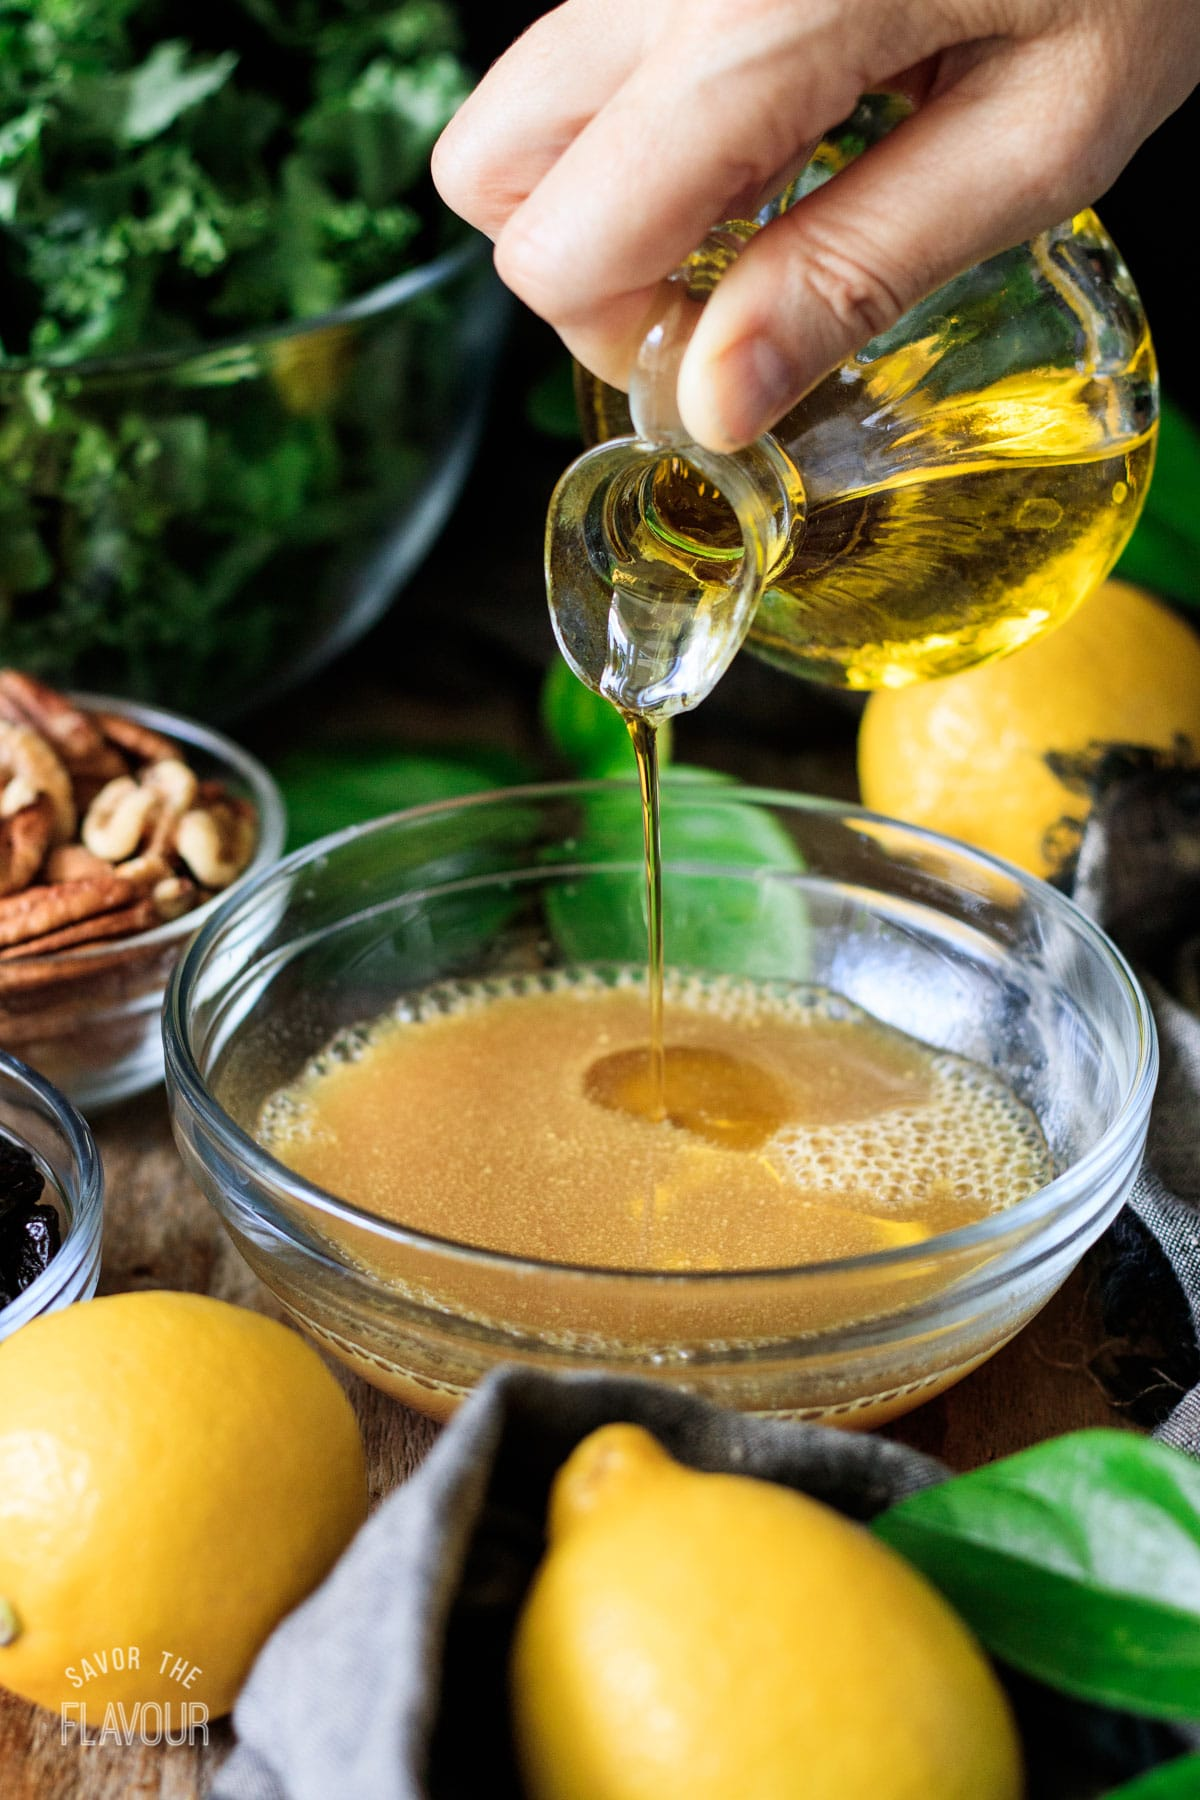 person pouring olive oil into the vinaigrette